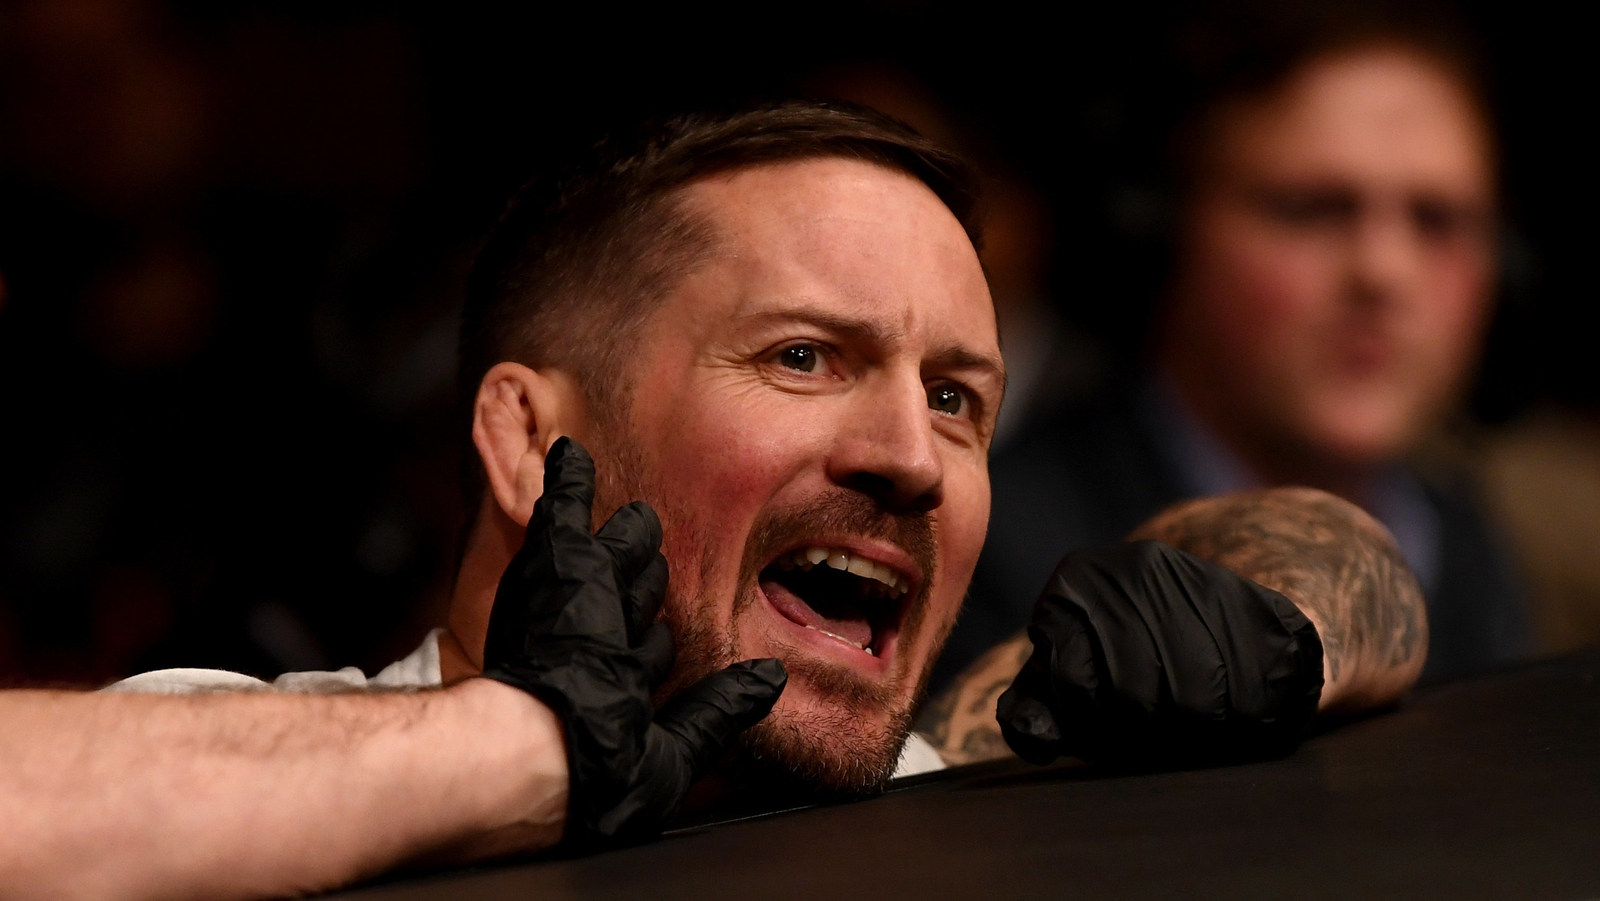 Image - IMMAA is headed up by McGregor's coach John Kavanagh